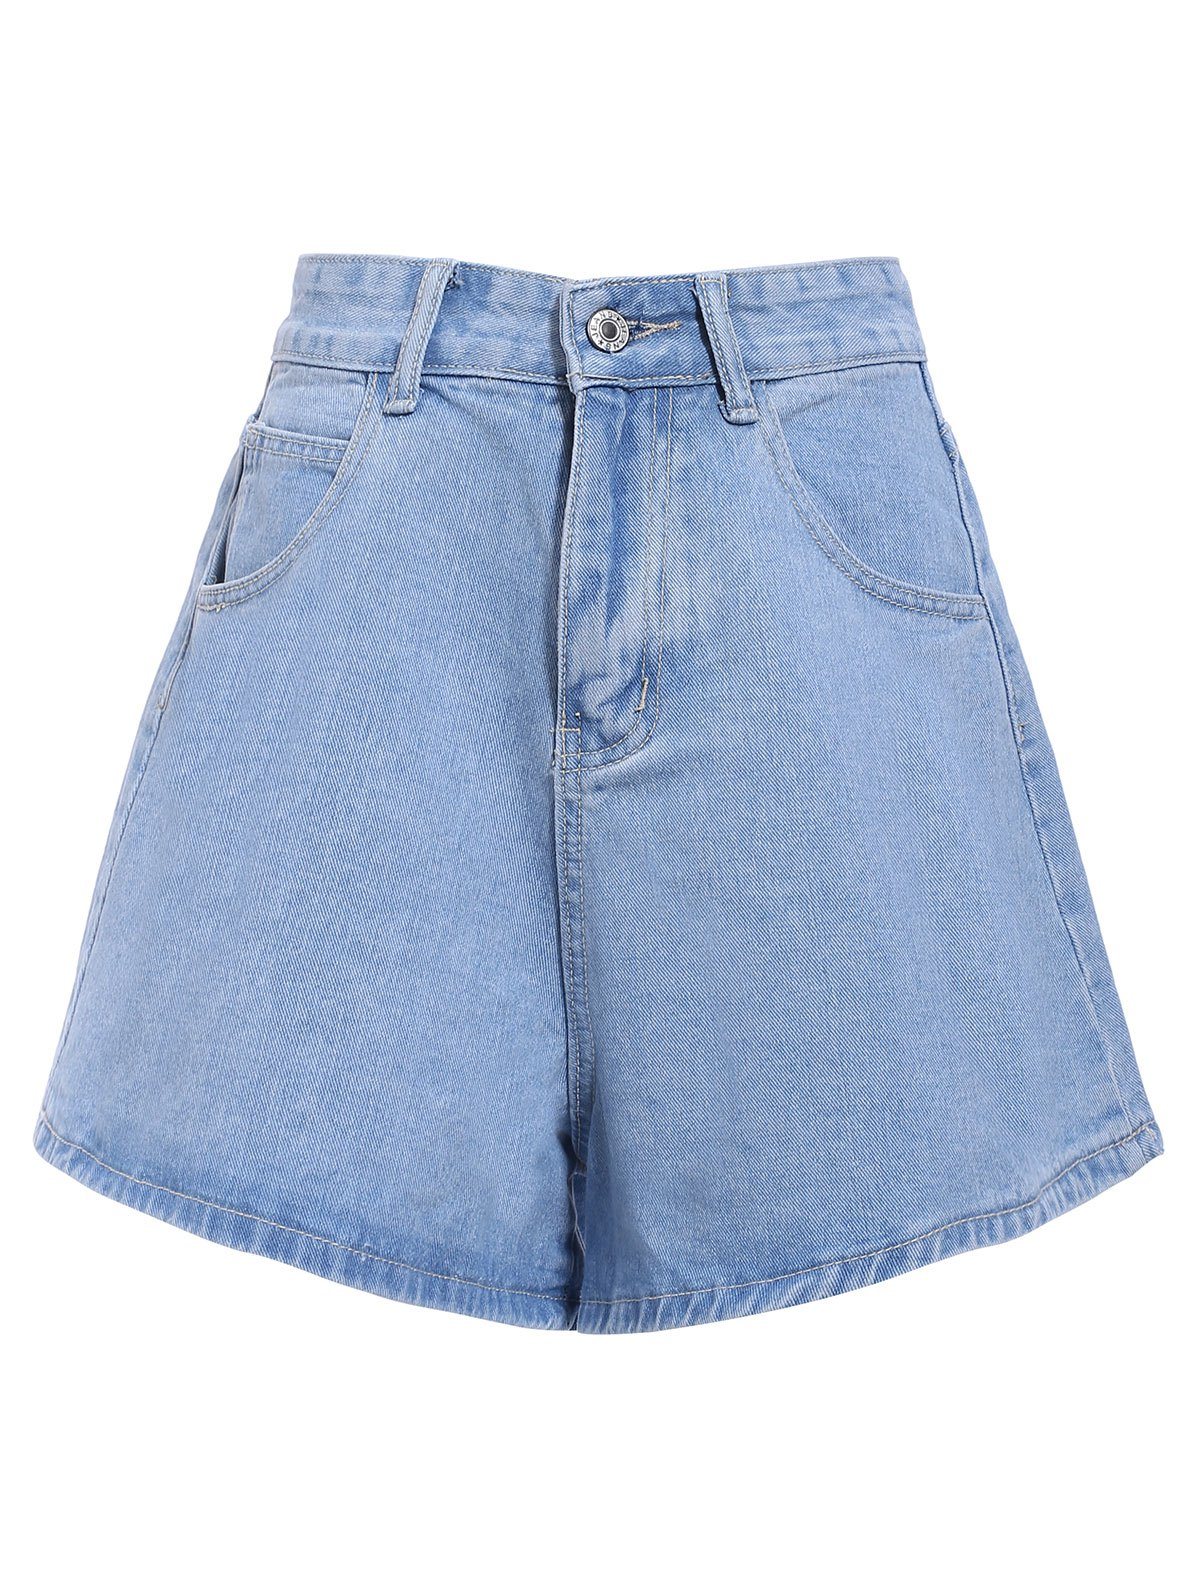 Chic Mid-Waisted Loose-Fitting Pure Color Pocket Design Women's Shorts